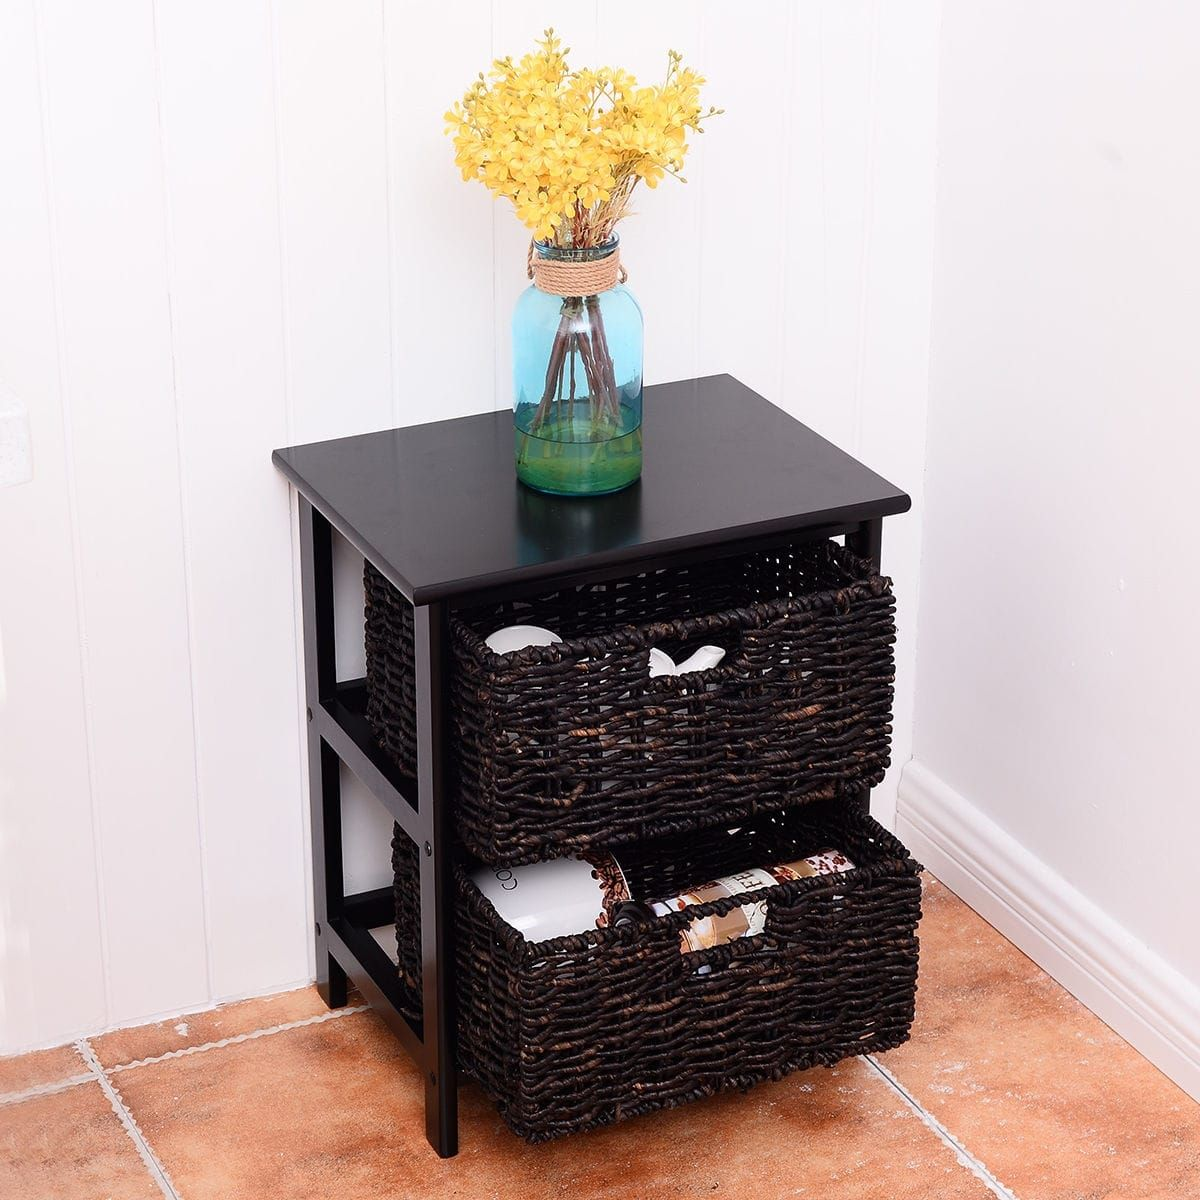 way wood end accent table home furniture living room night stand with storage baskets dark nest tables small outdoor sofa big lots chairs low corner metal floor threshold doors